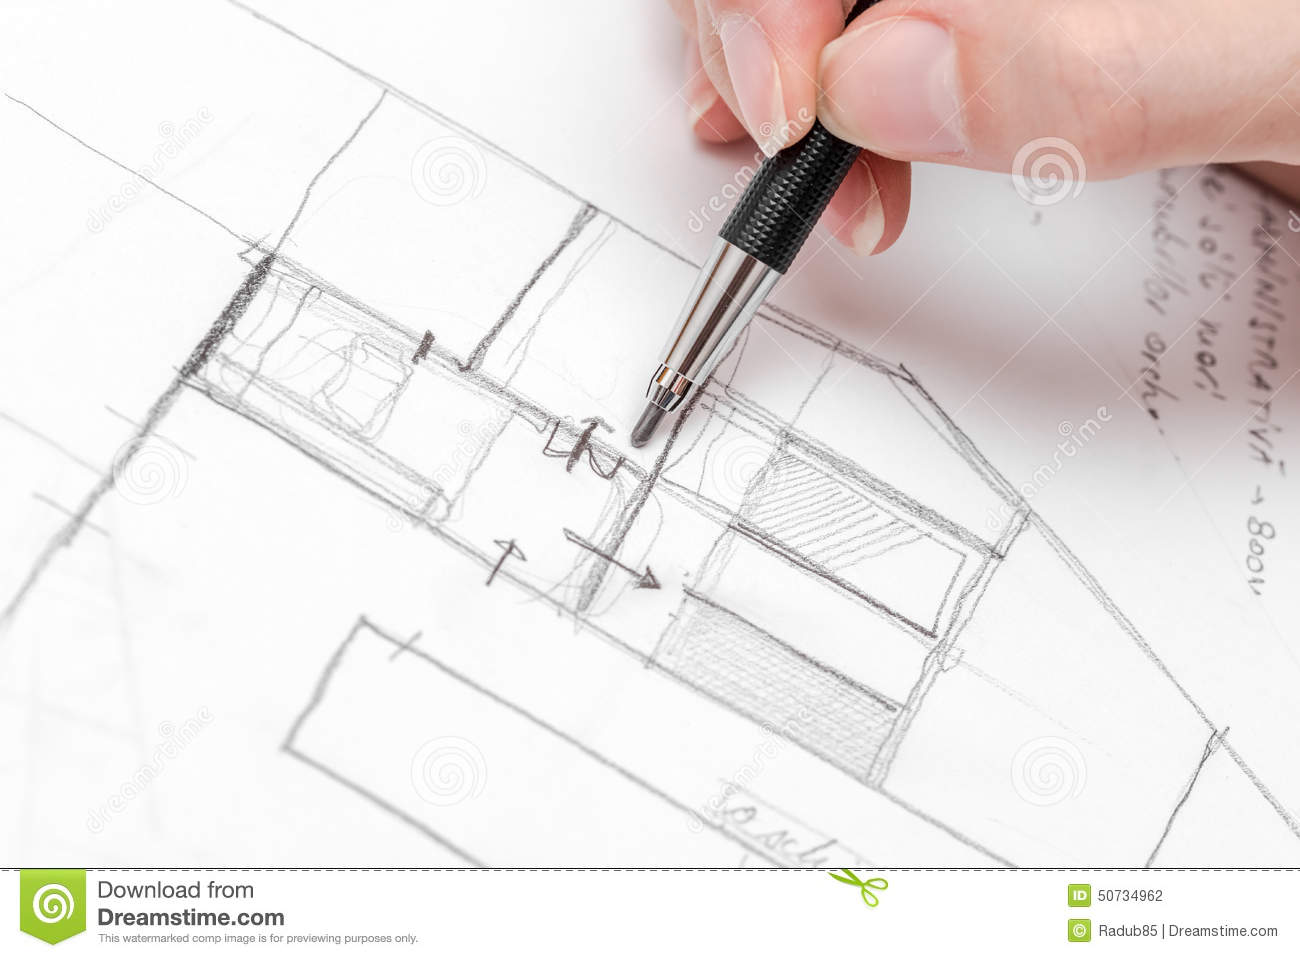 Architect hand drawing house plan sketch stock photo for How to draw architectural plans by hand